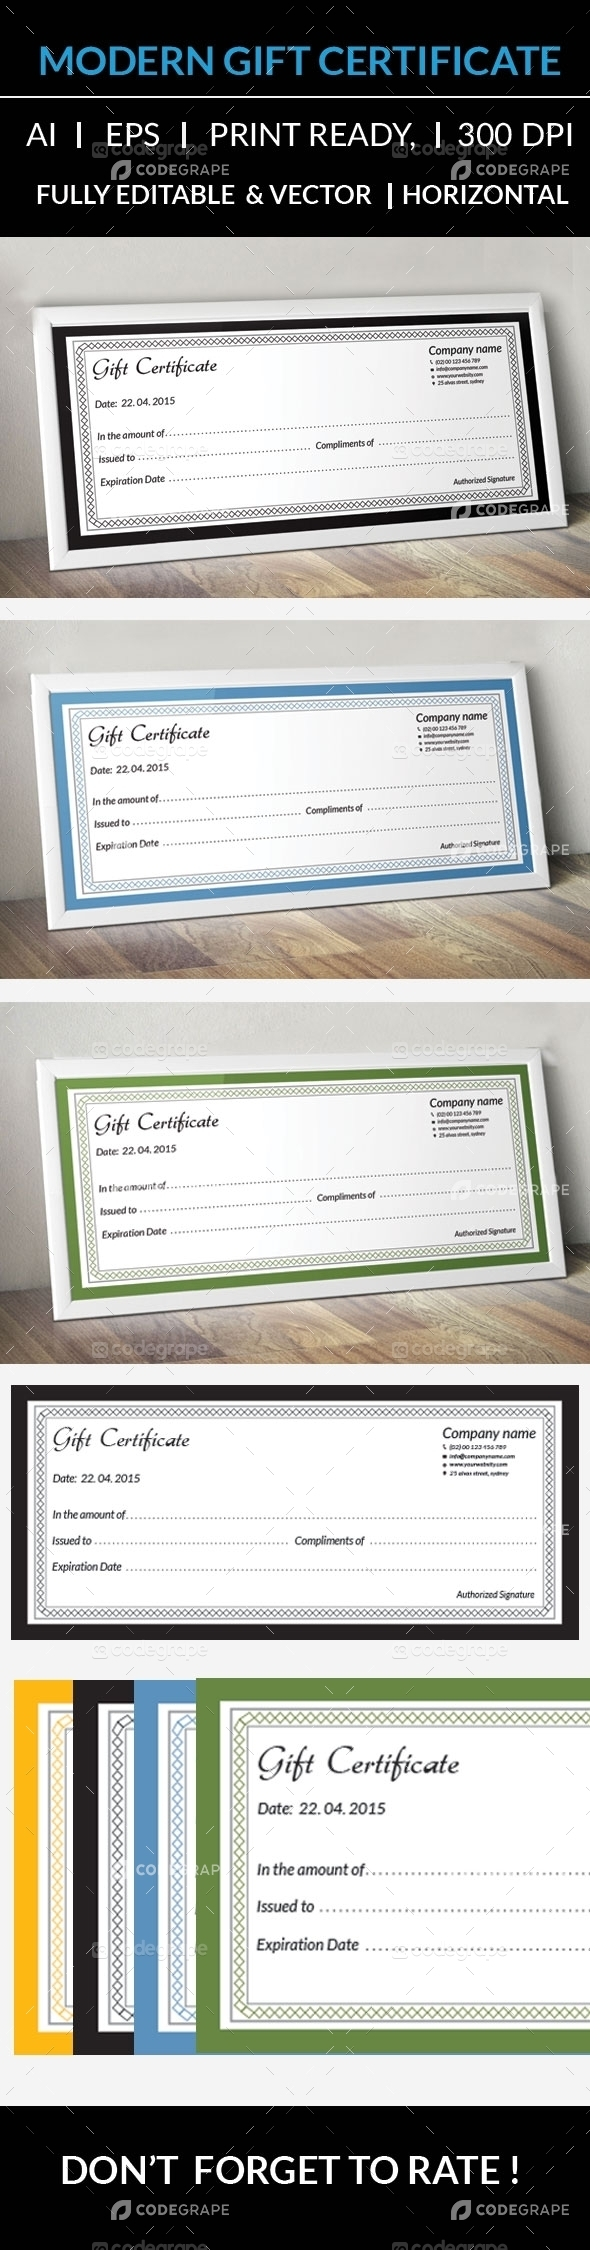 Clean Gift Certificate